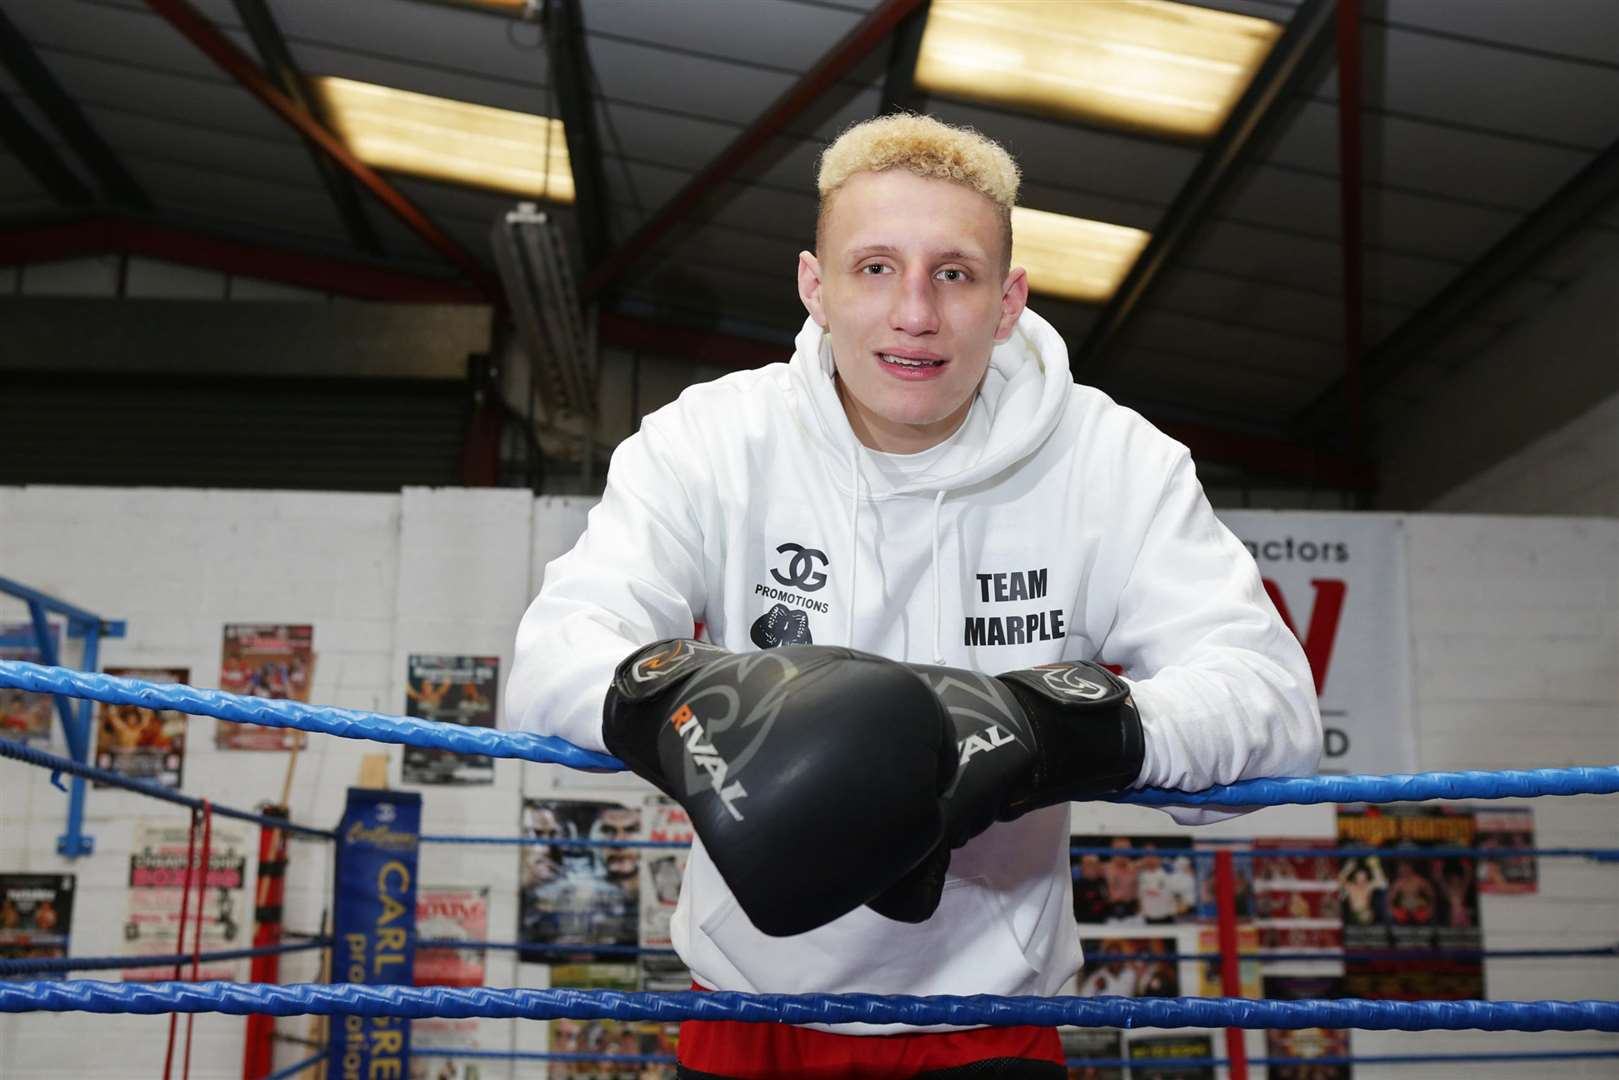 Boxer Olly Marple is next in the ring on September 15 at Leicester City's King Power Stadium.